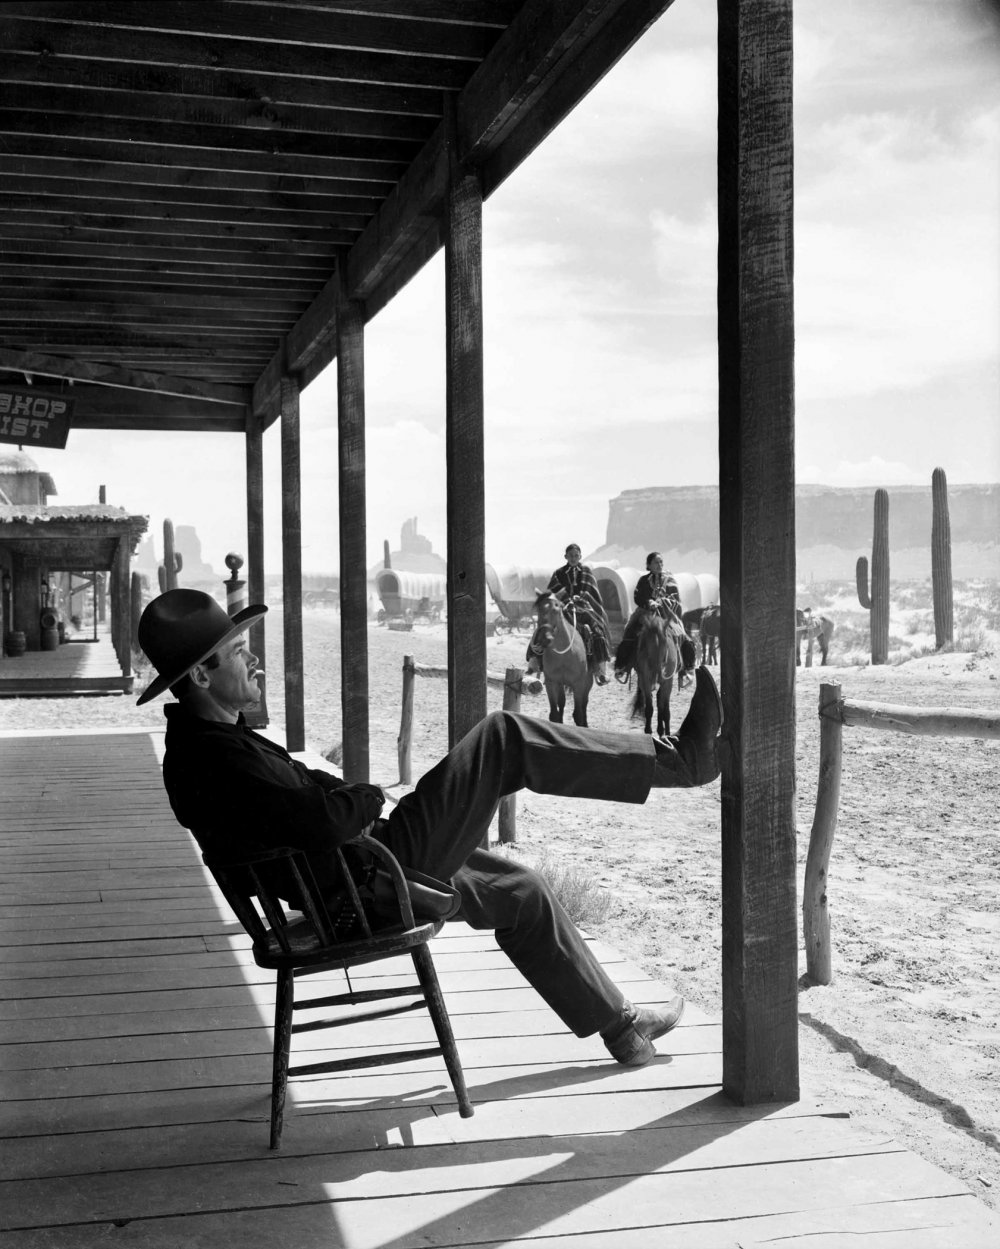 Henry Fonda as Wyatt Earp in John Ford's 1946 masterpiece My Darling Clementine, screening in a restored version this afternoon in the Journey strand